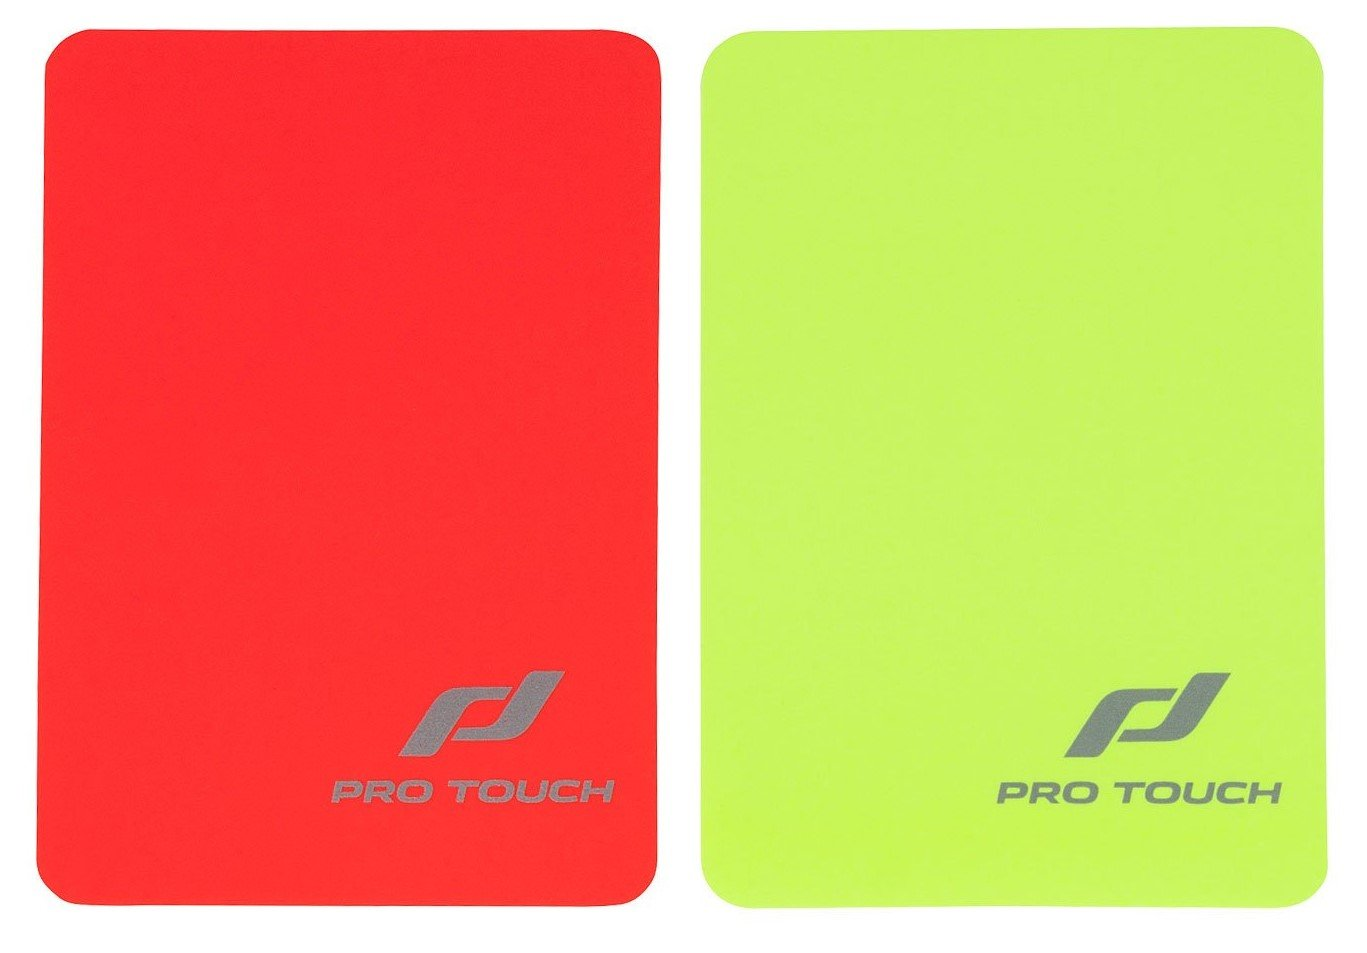 Pro Touch Card Set